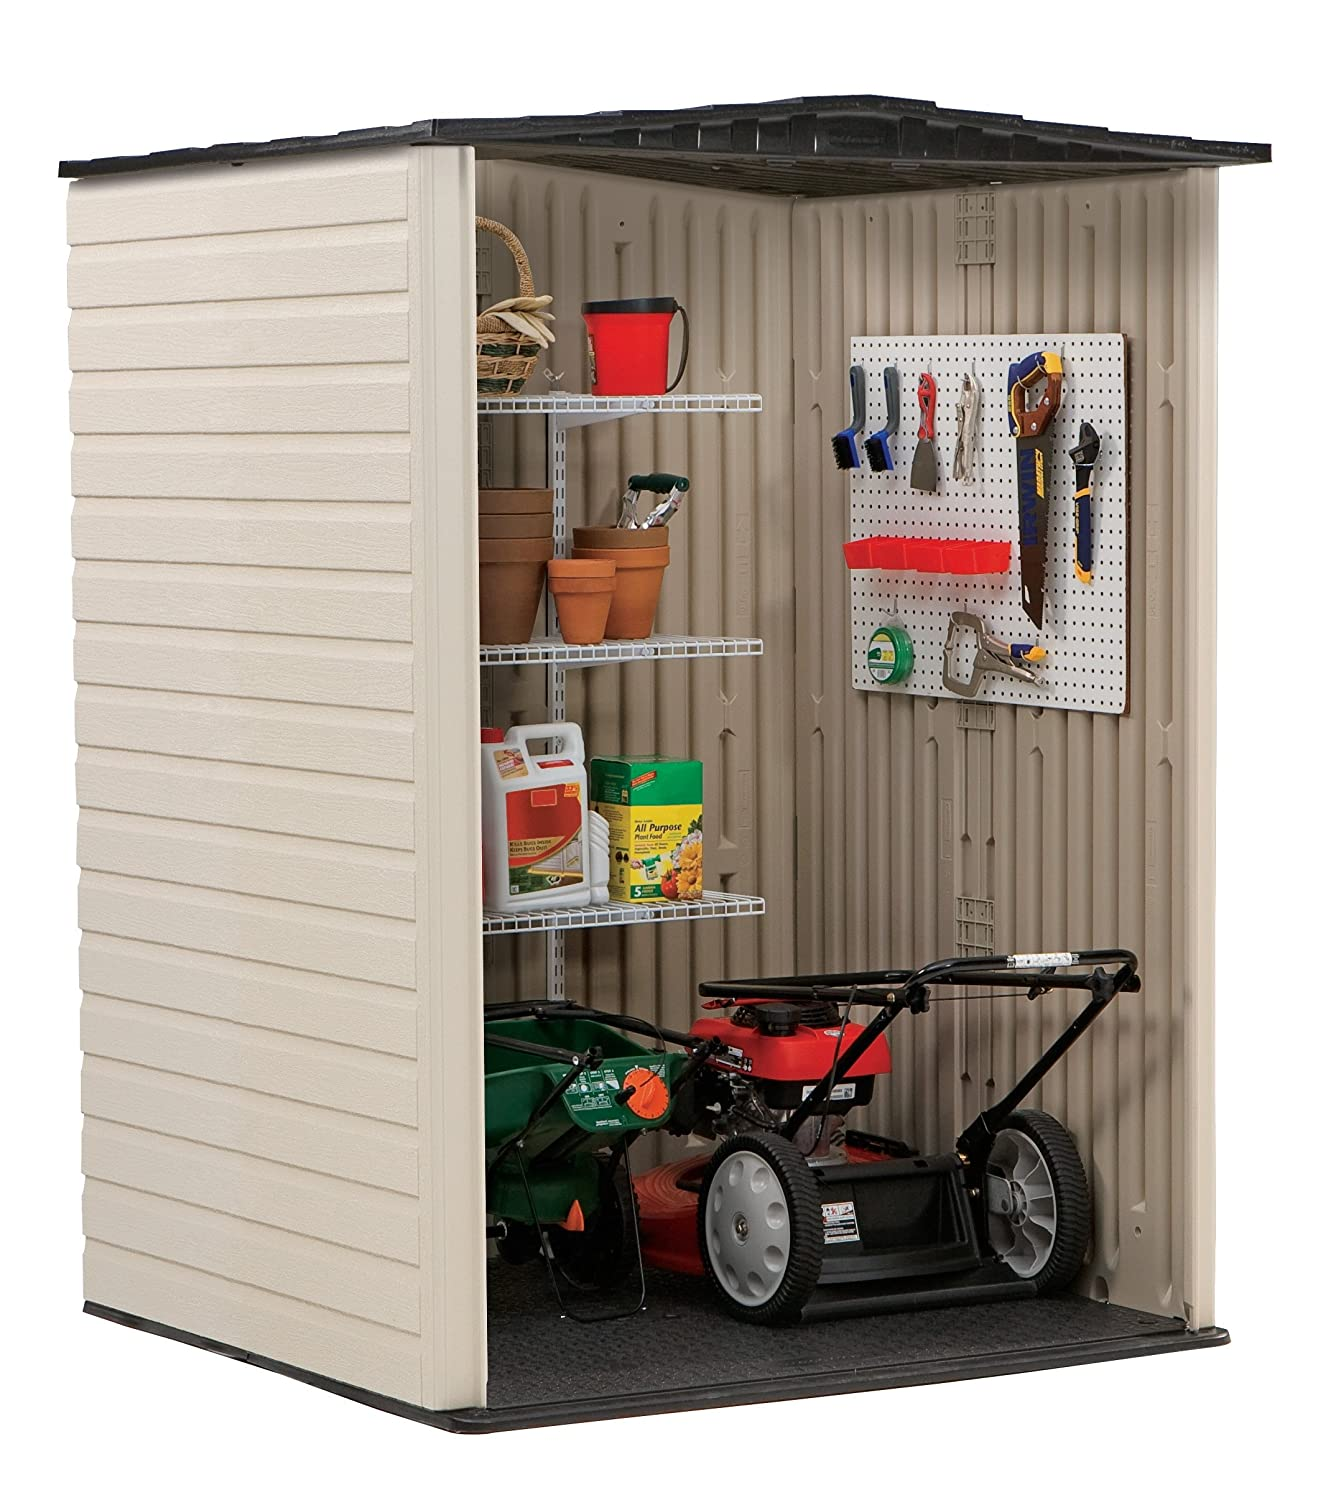 Amazon.com : Rubbermaid Roughneck Plastic Medium Vertical Storage Shed,  106 Cubic Feet, FG5L2000SDONX : Garden U0026 Outdoor